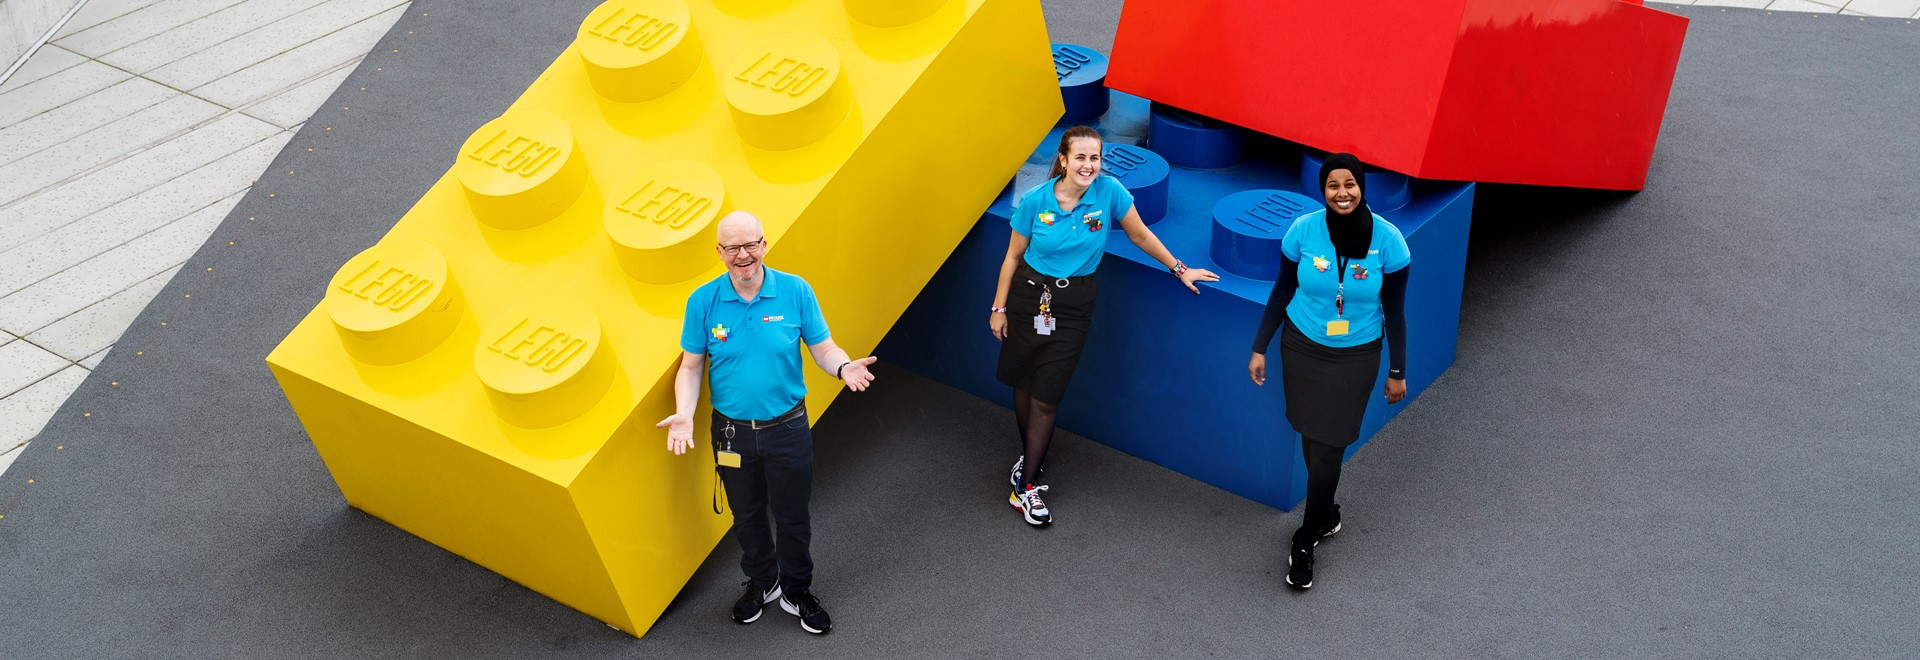 Bring your family to LEGO House - plan your visit here